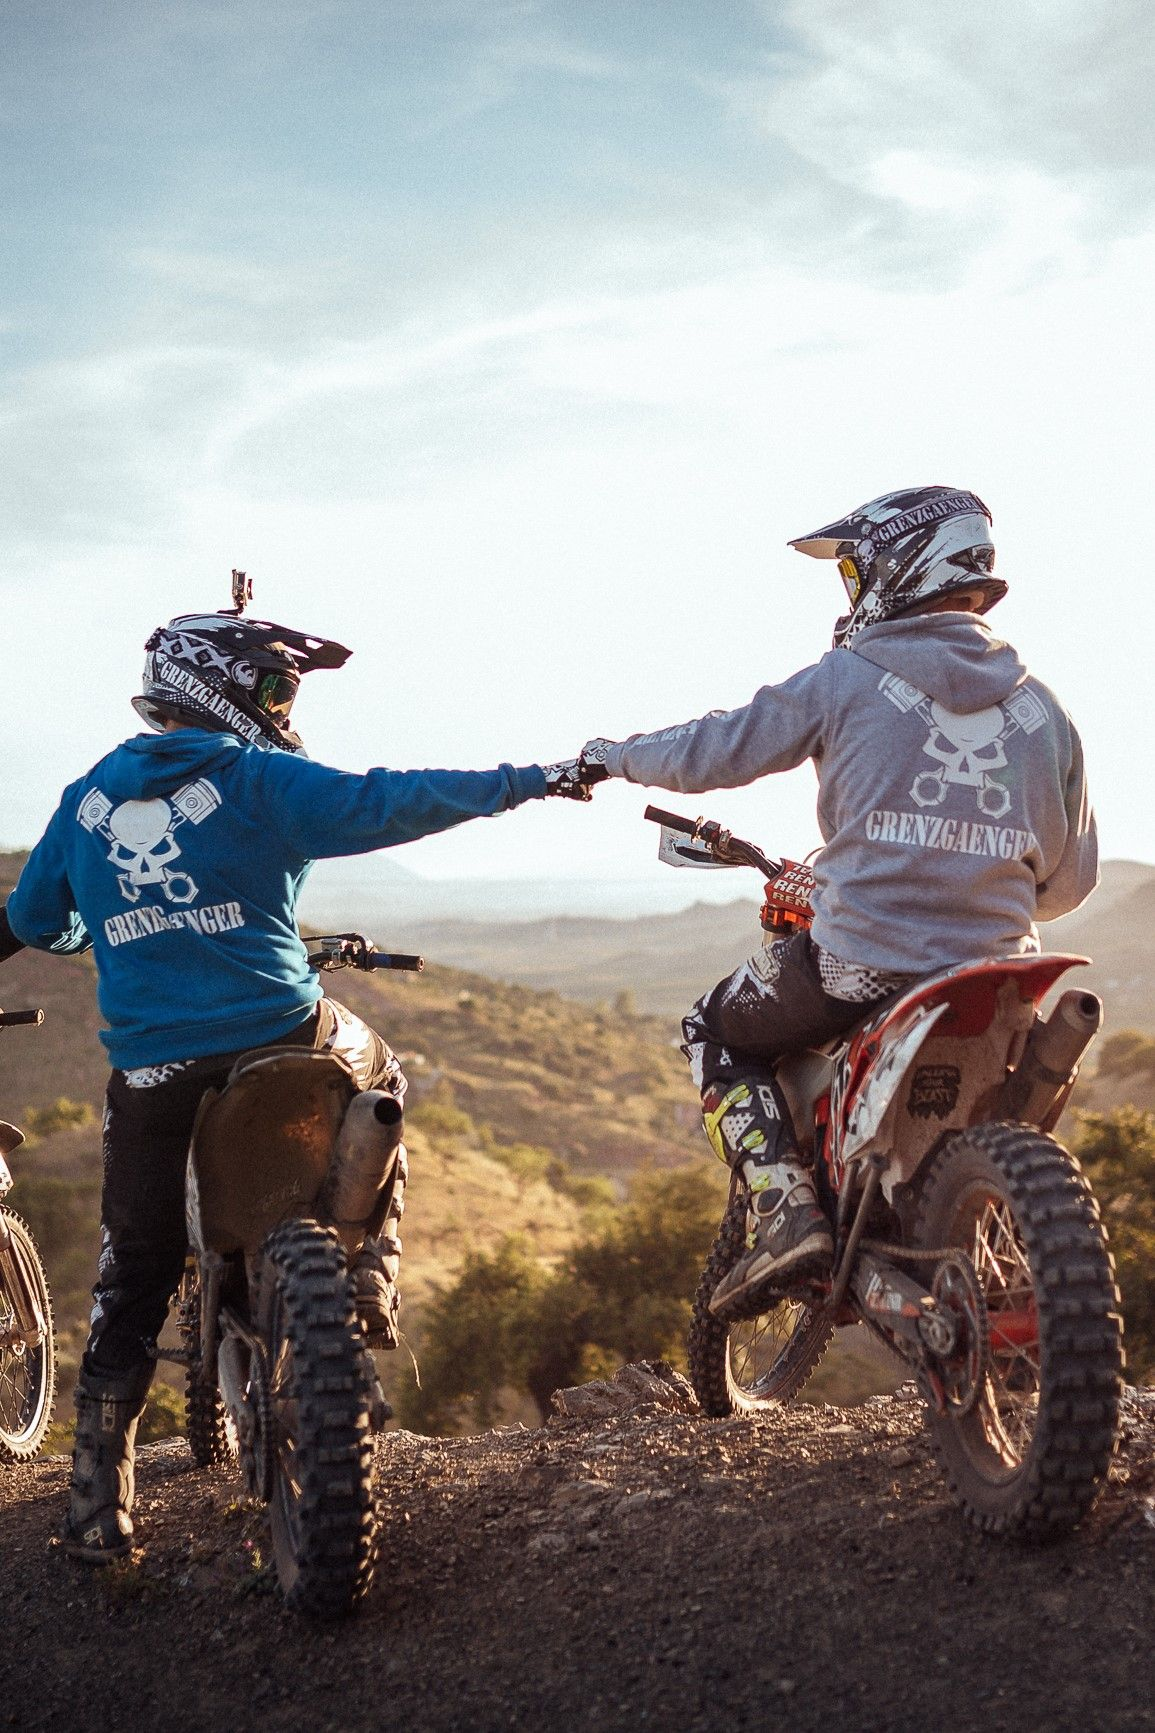 Take Your Buddy To Nice Places Motocross Love Motorcross Bike Motocross Bikes